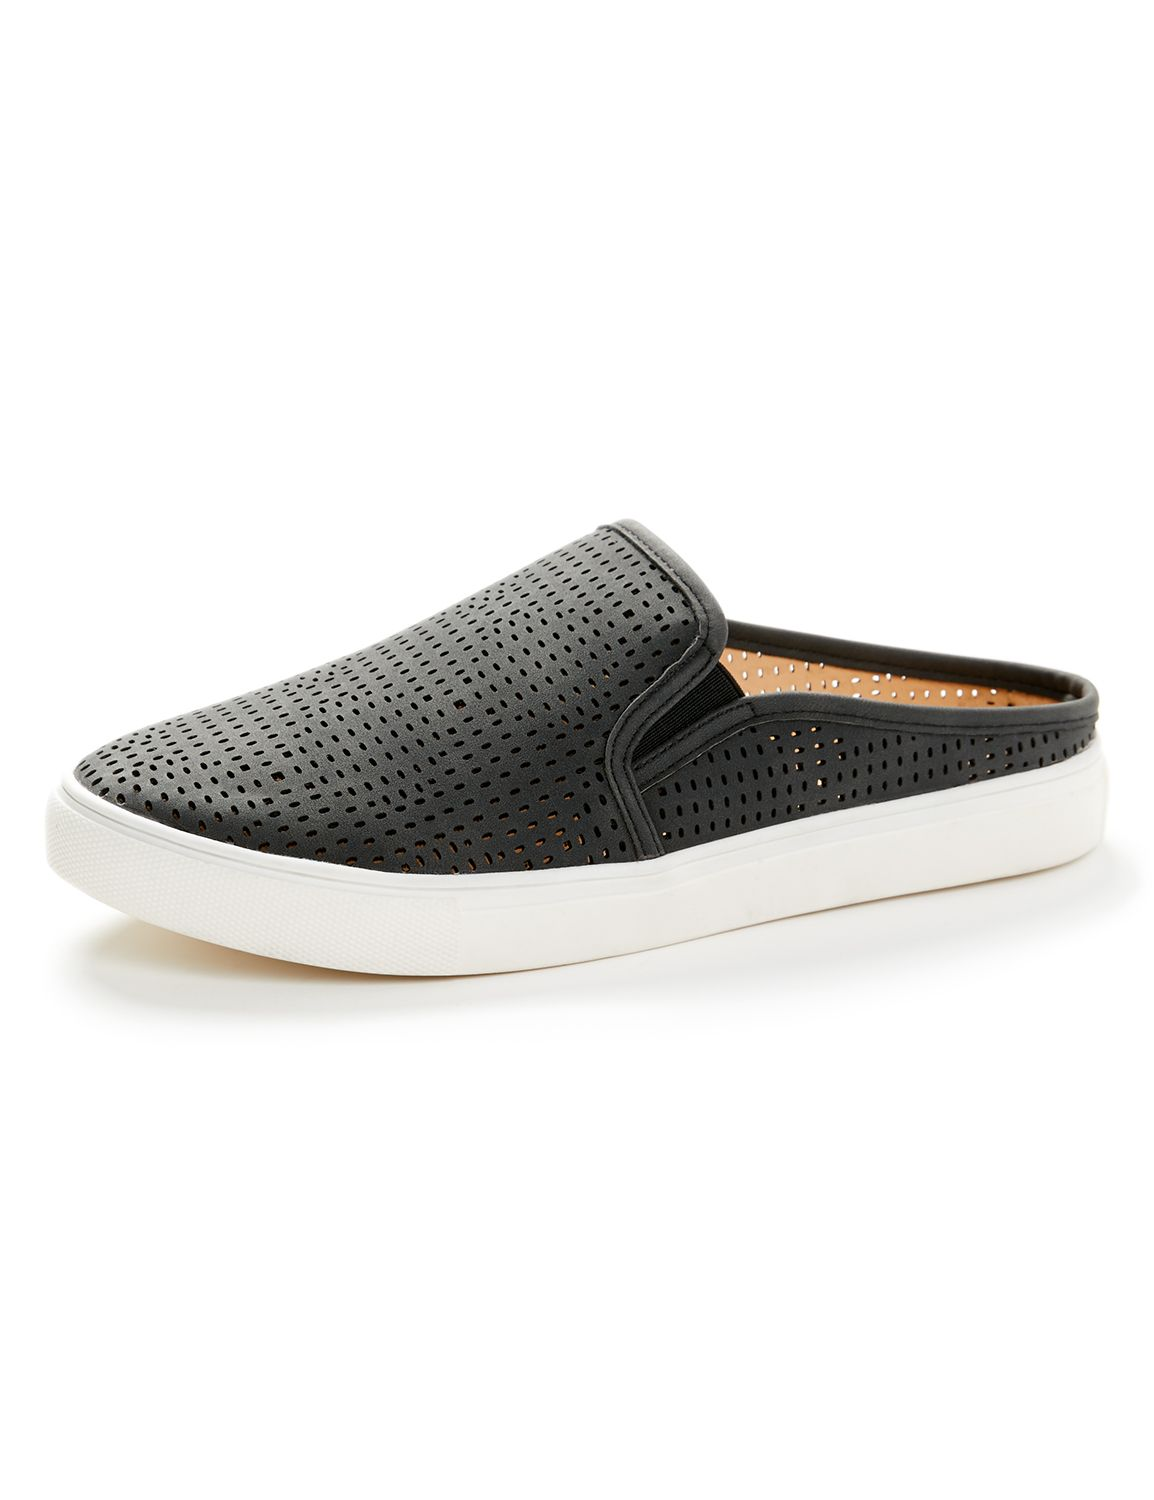 Good Soles Slip-On Sneaker Perf Slip On Sneaker M24813 MP-300097773